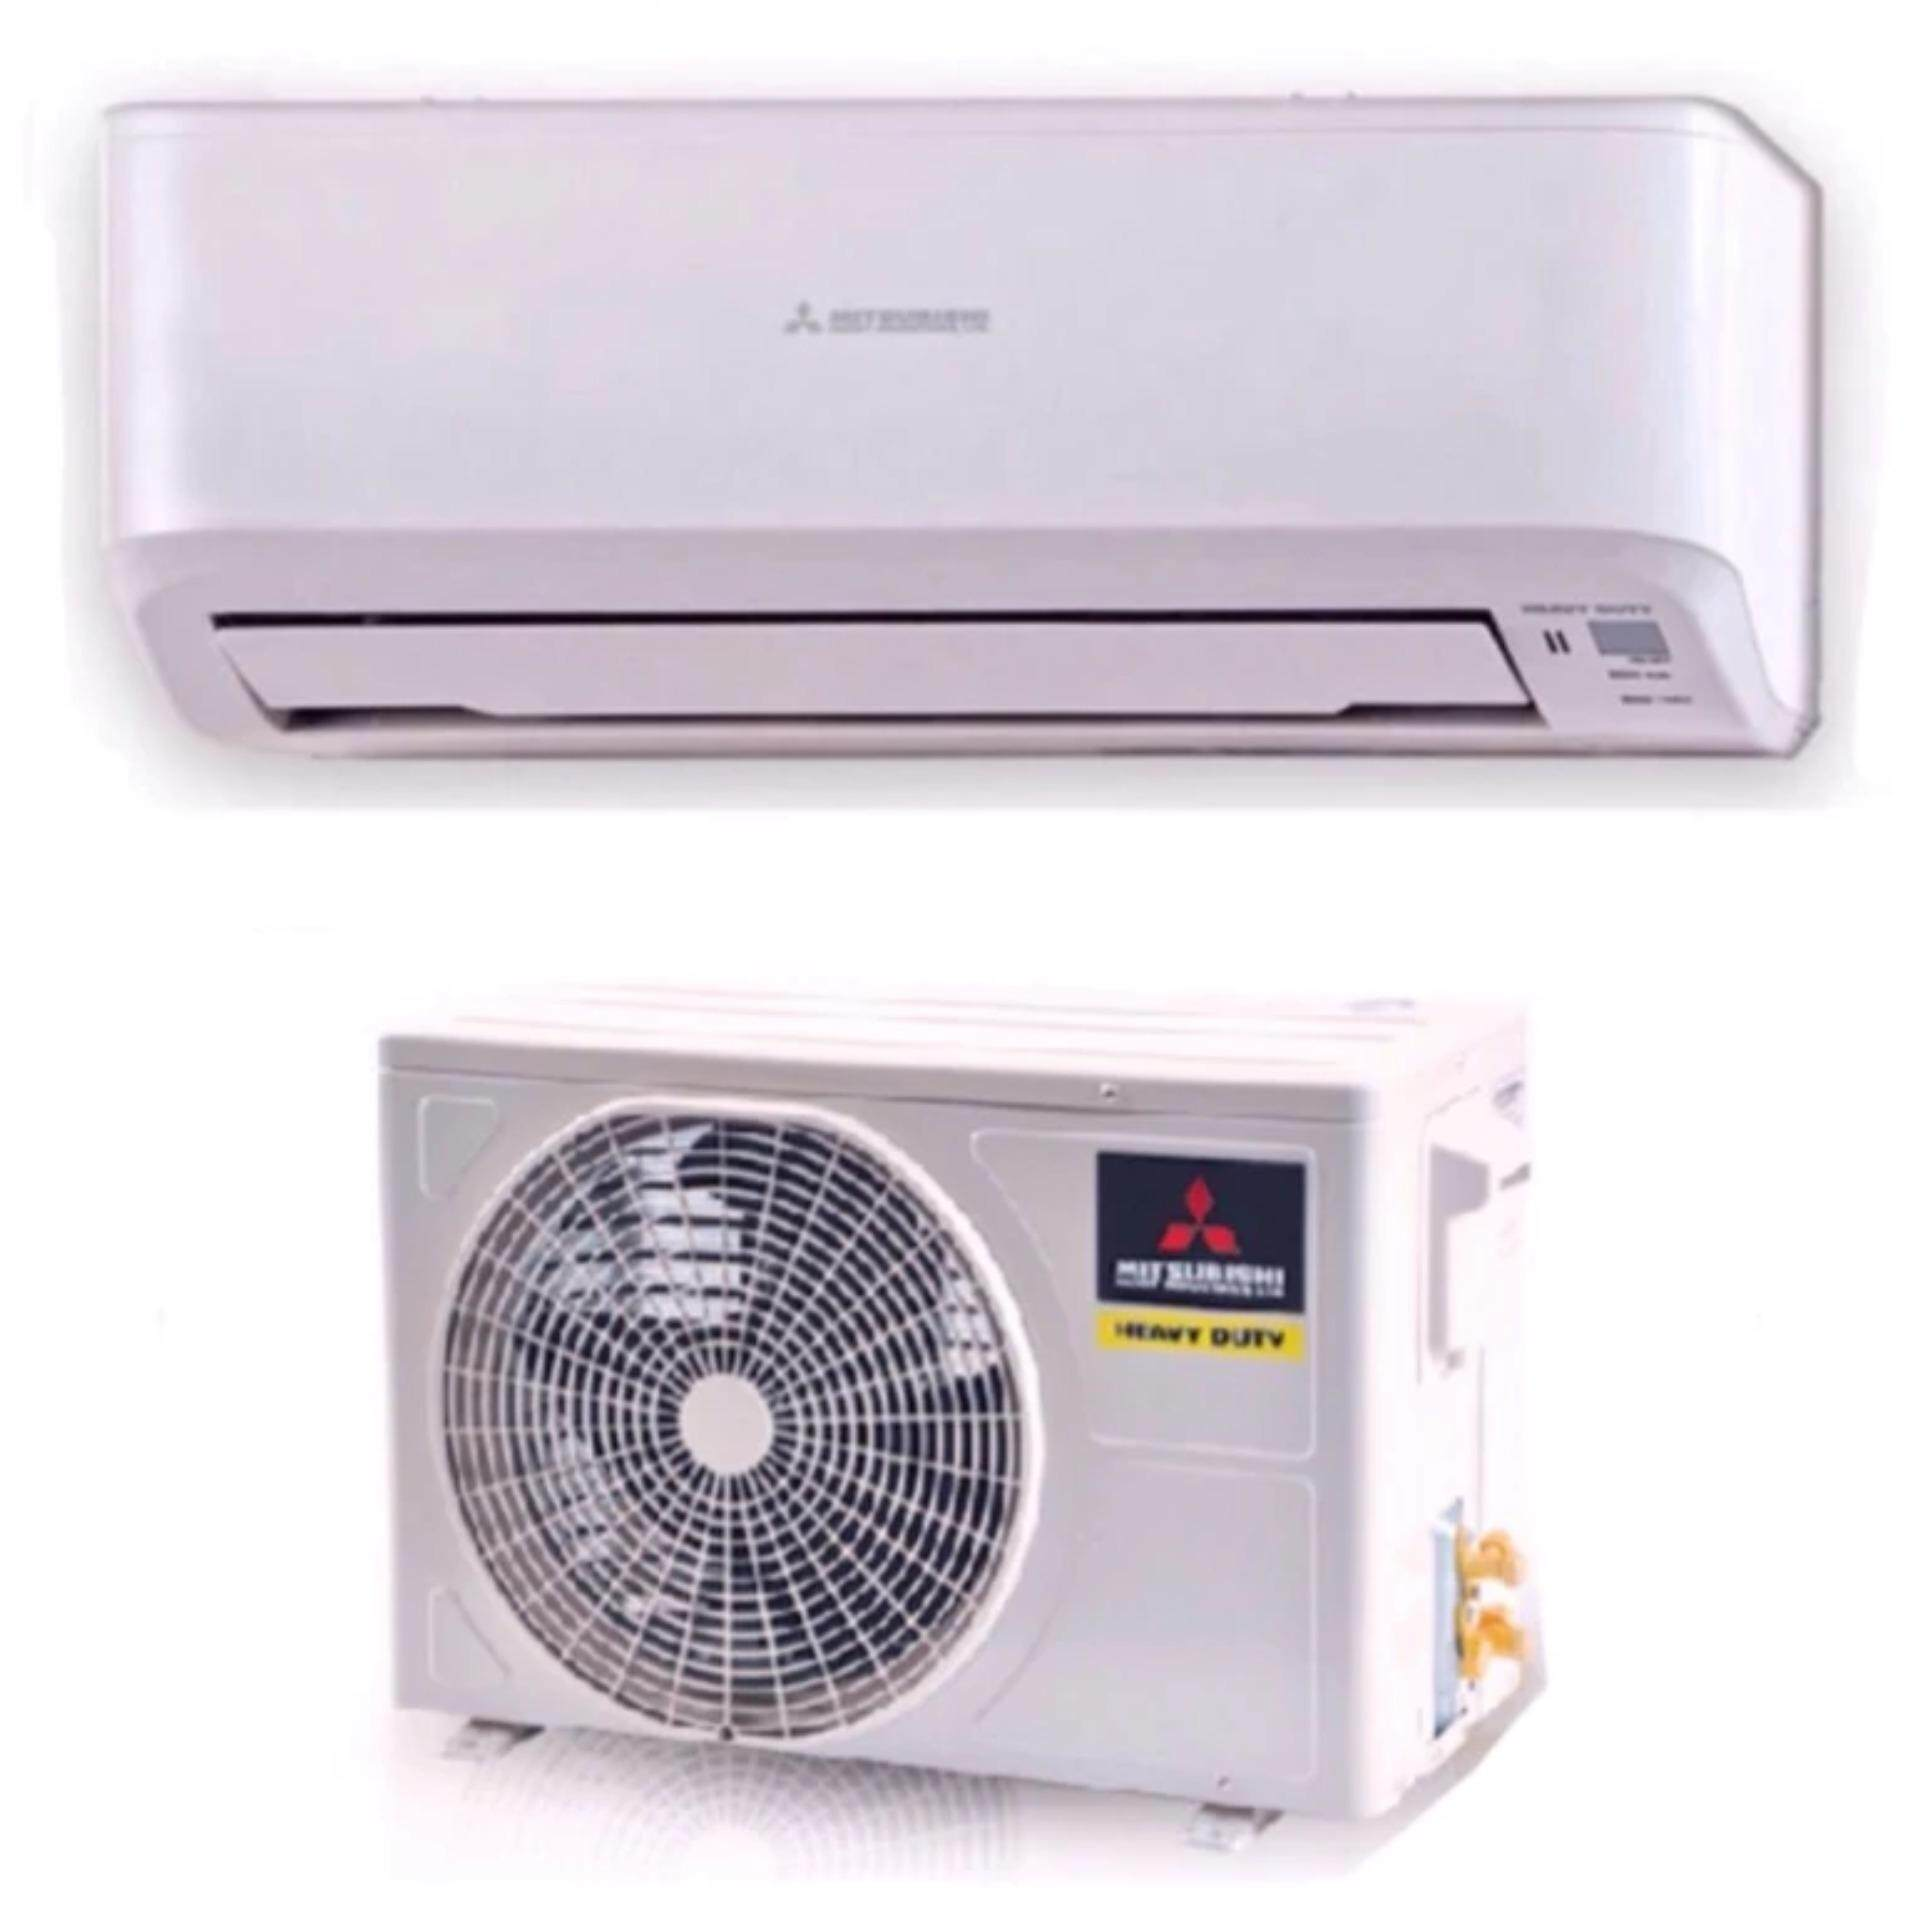 Mitsubishi 1.0HP Standard Air Conditioner R410A SRK09CRR